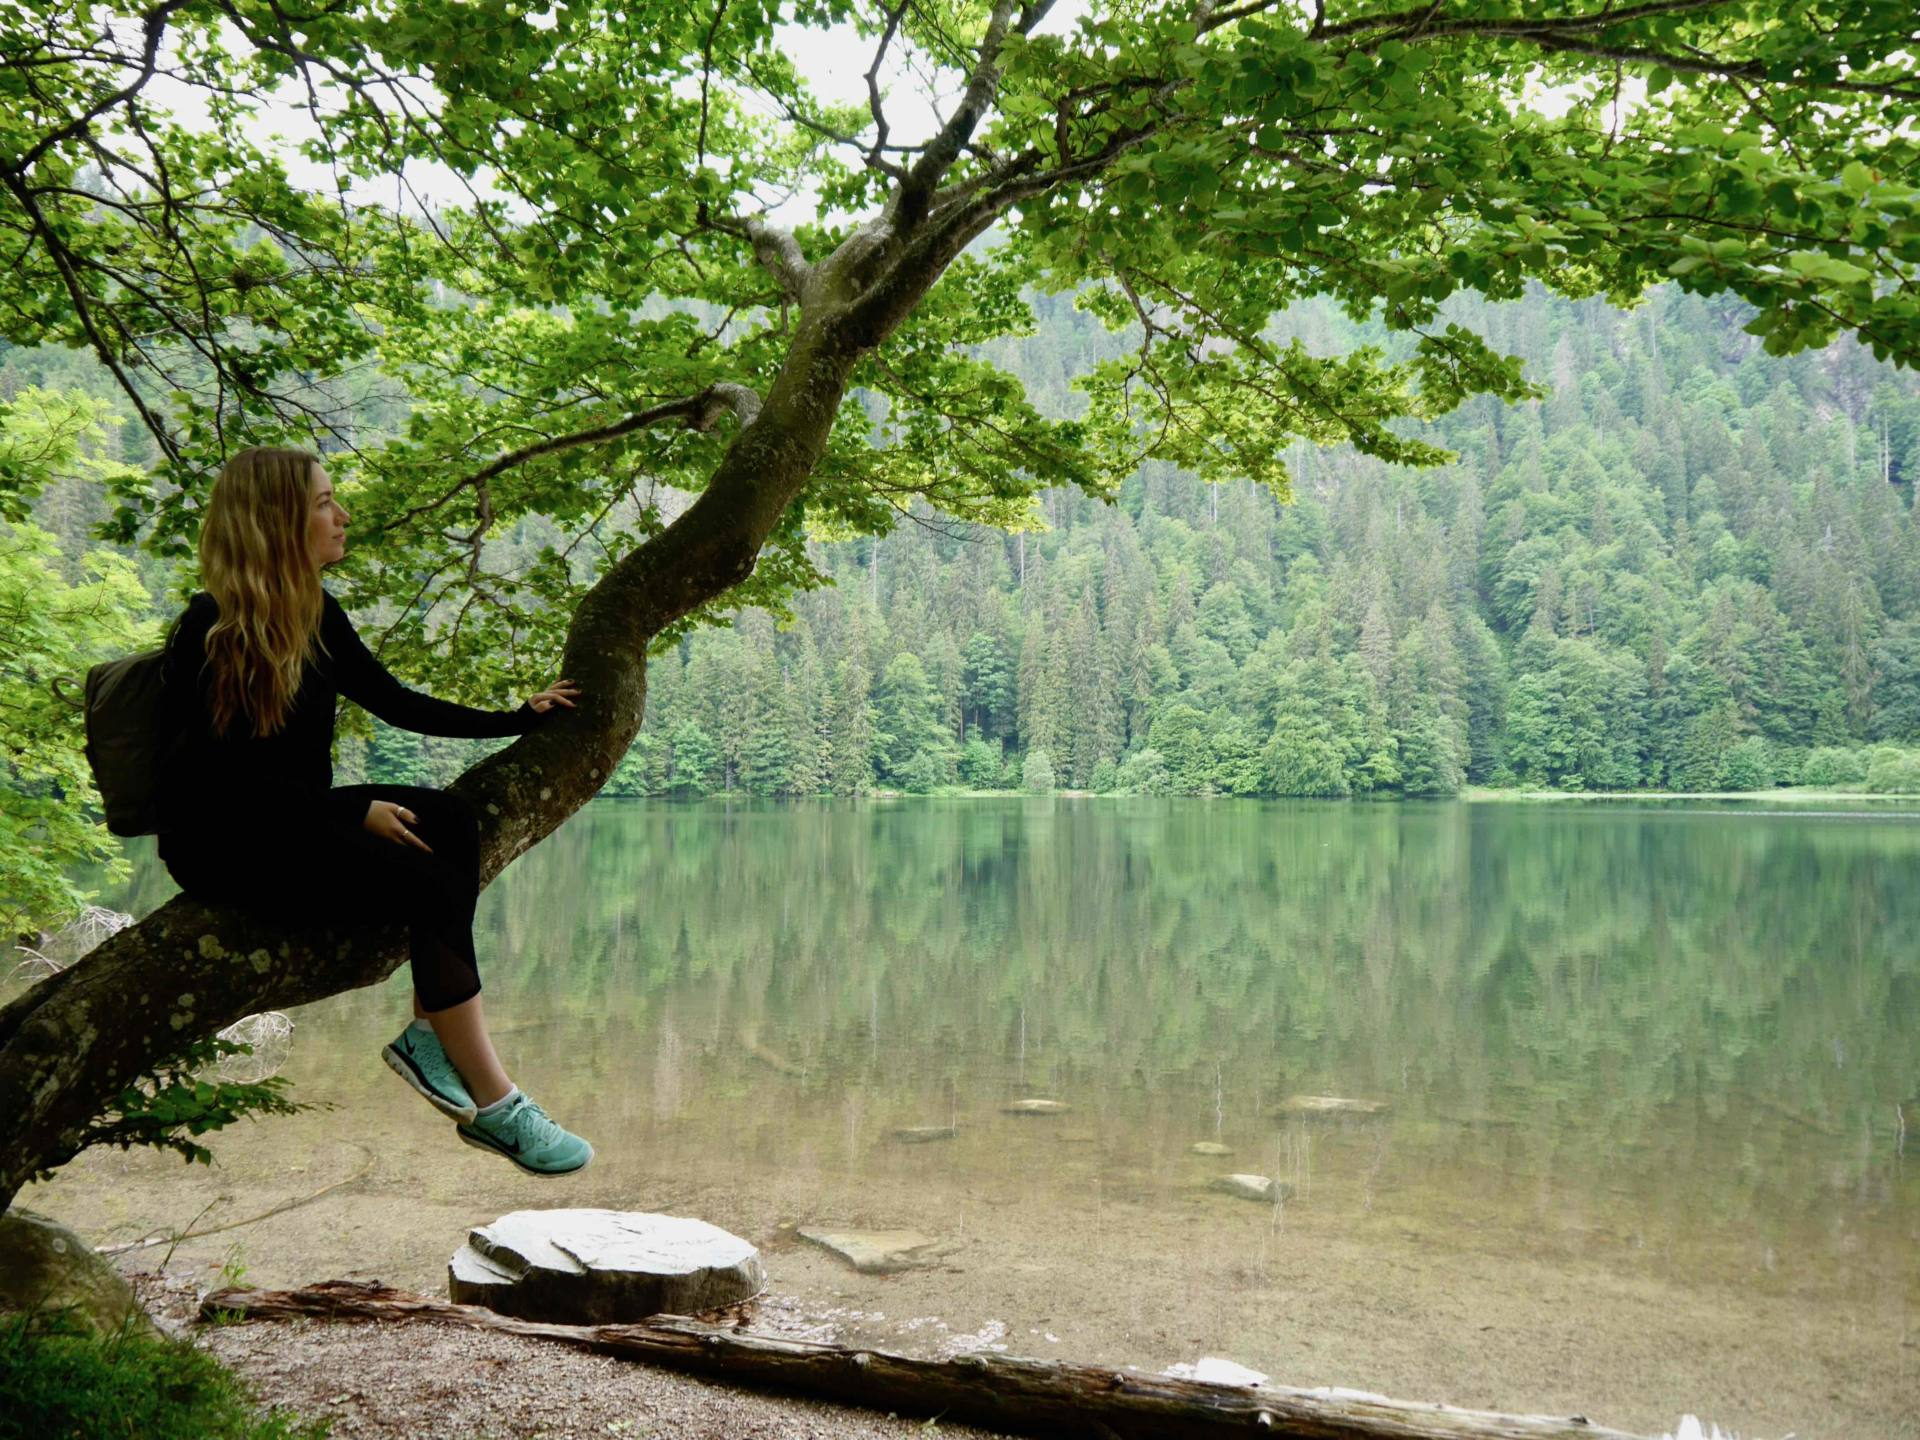 Feldsee Lake | Things to do in the Black Forest